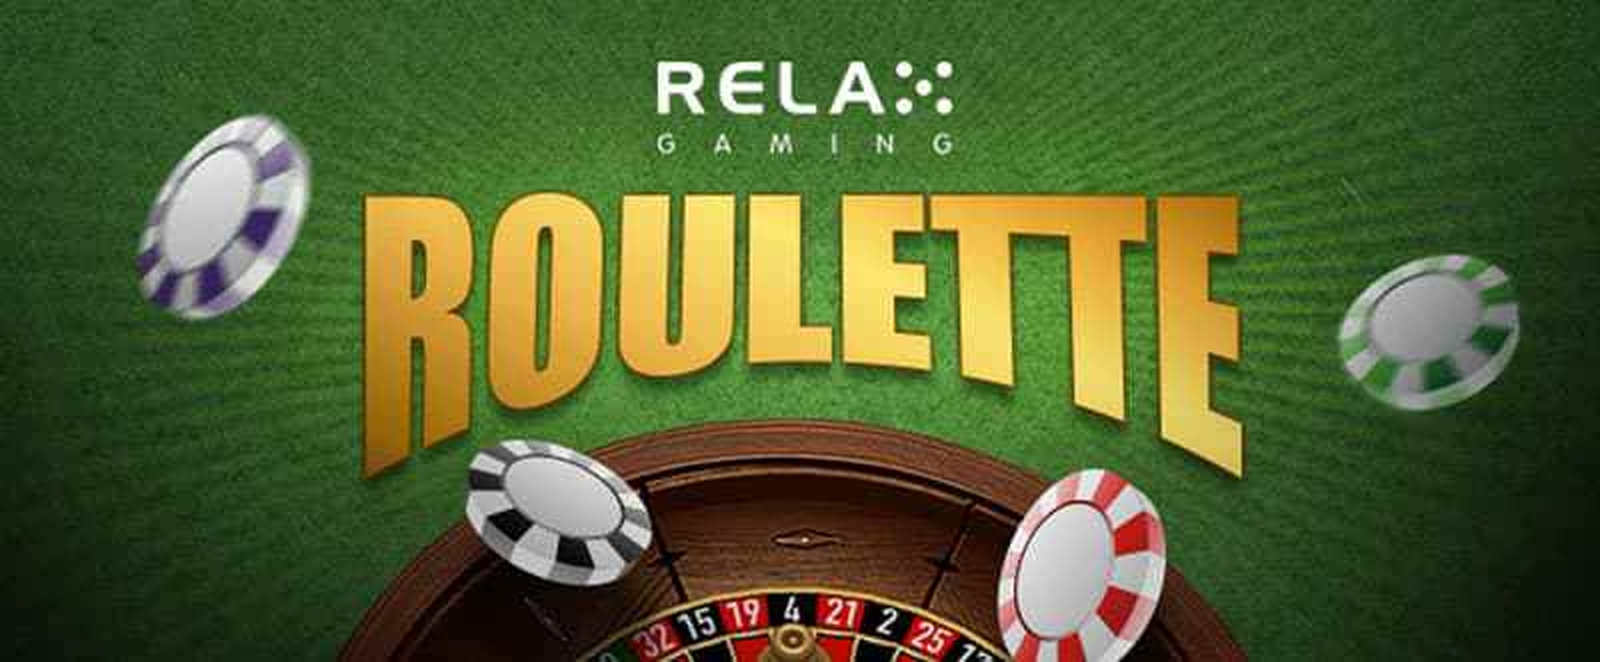 The Roulette (Relax Gaming) Online Slot Demo Game by Relax Gaming